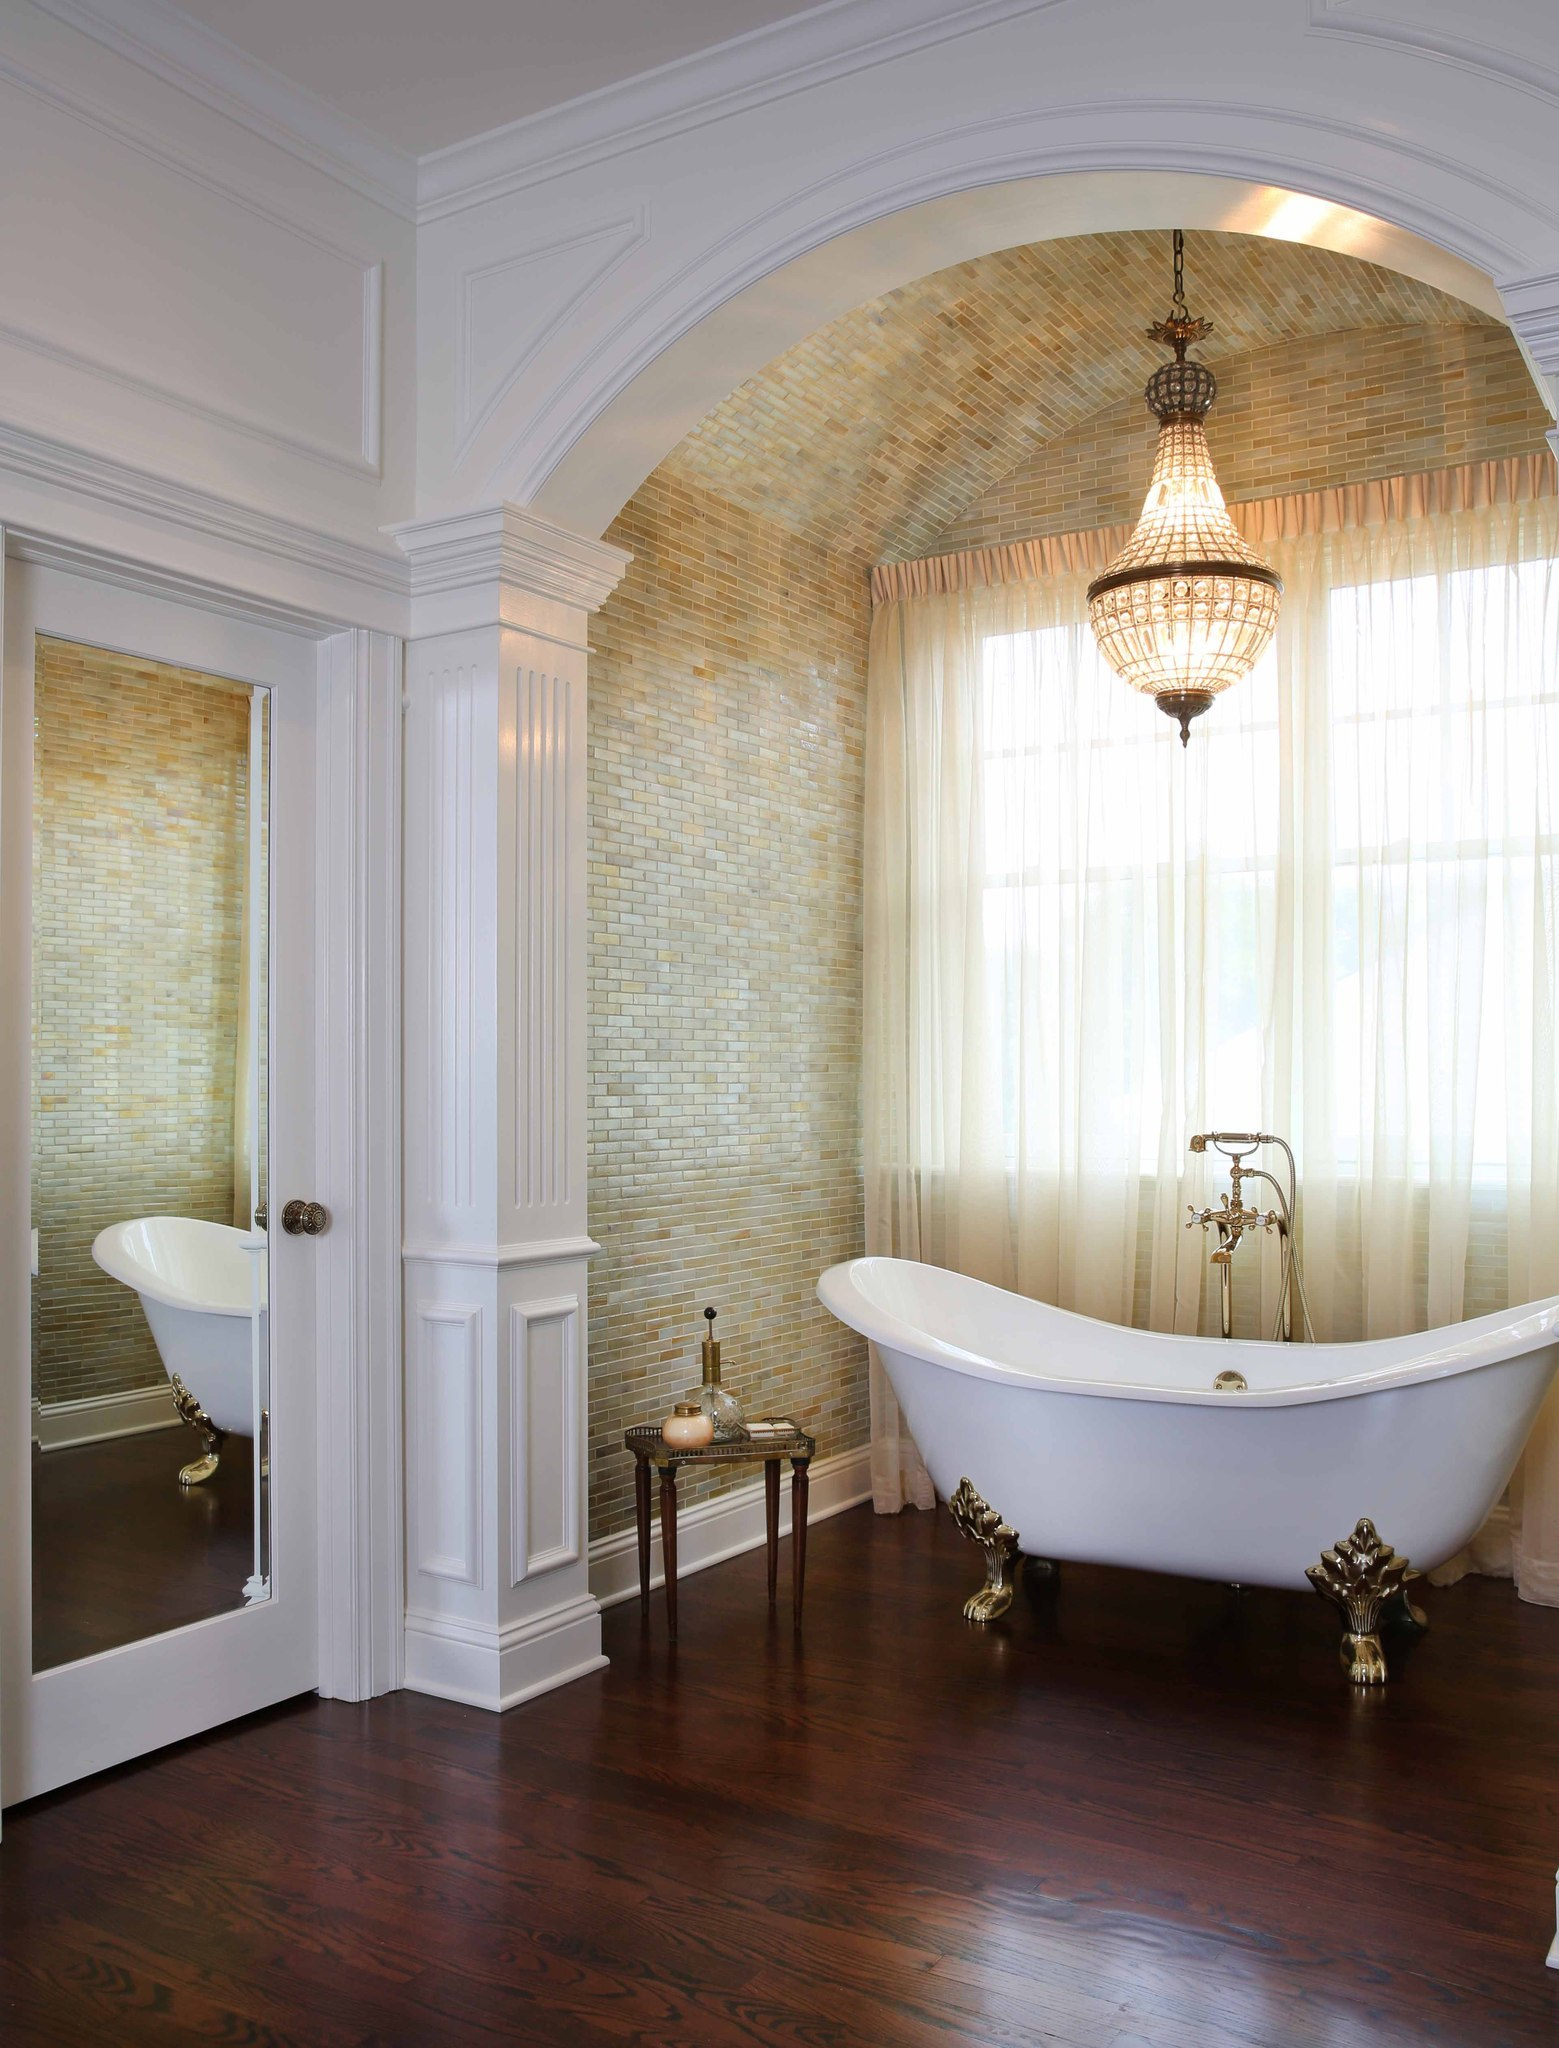 bathroom remodel ideas 2014 top 10 bathroom design trends for 2014 the doings la grange 15997